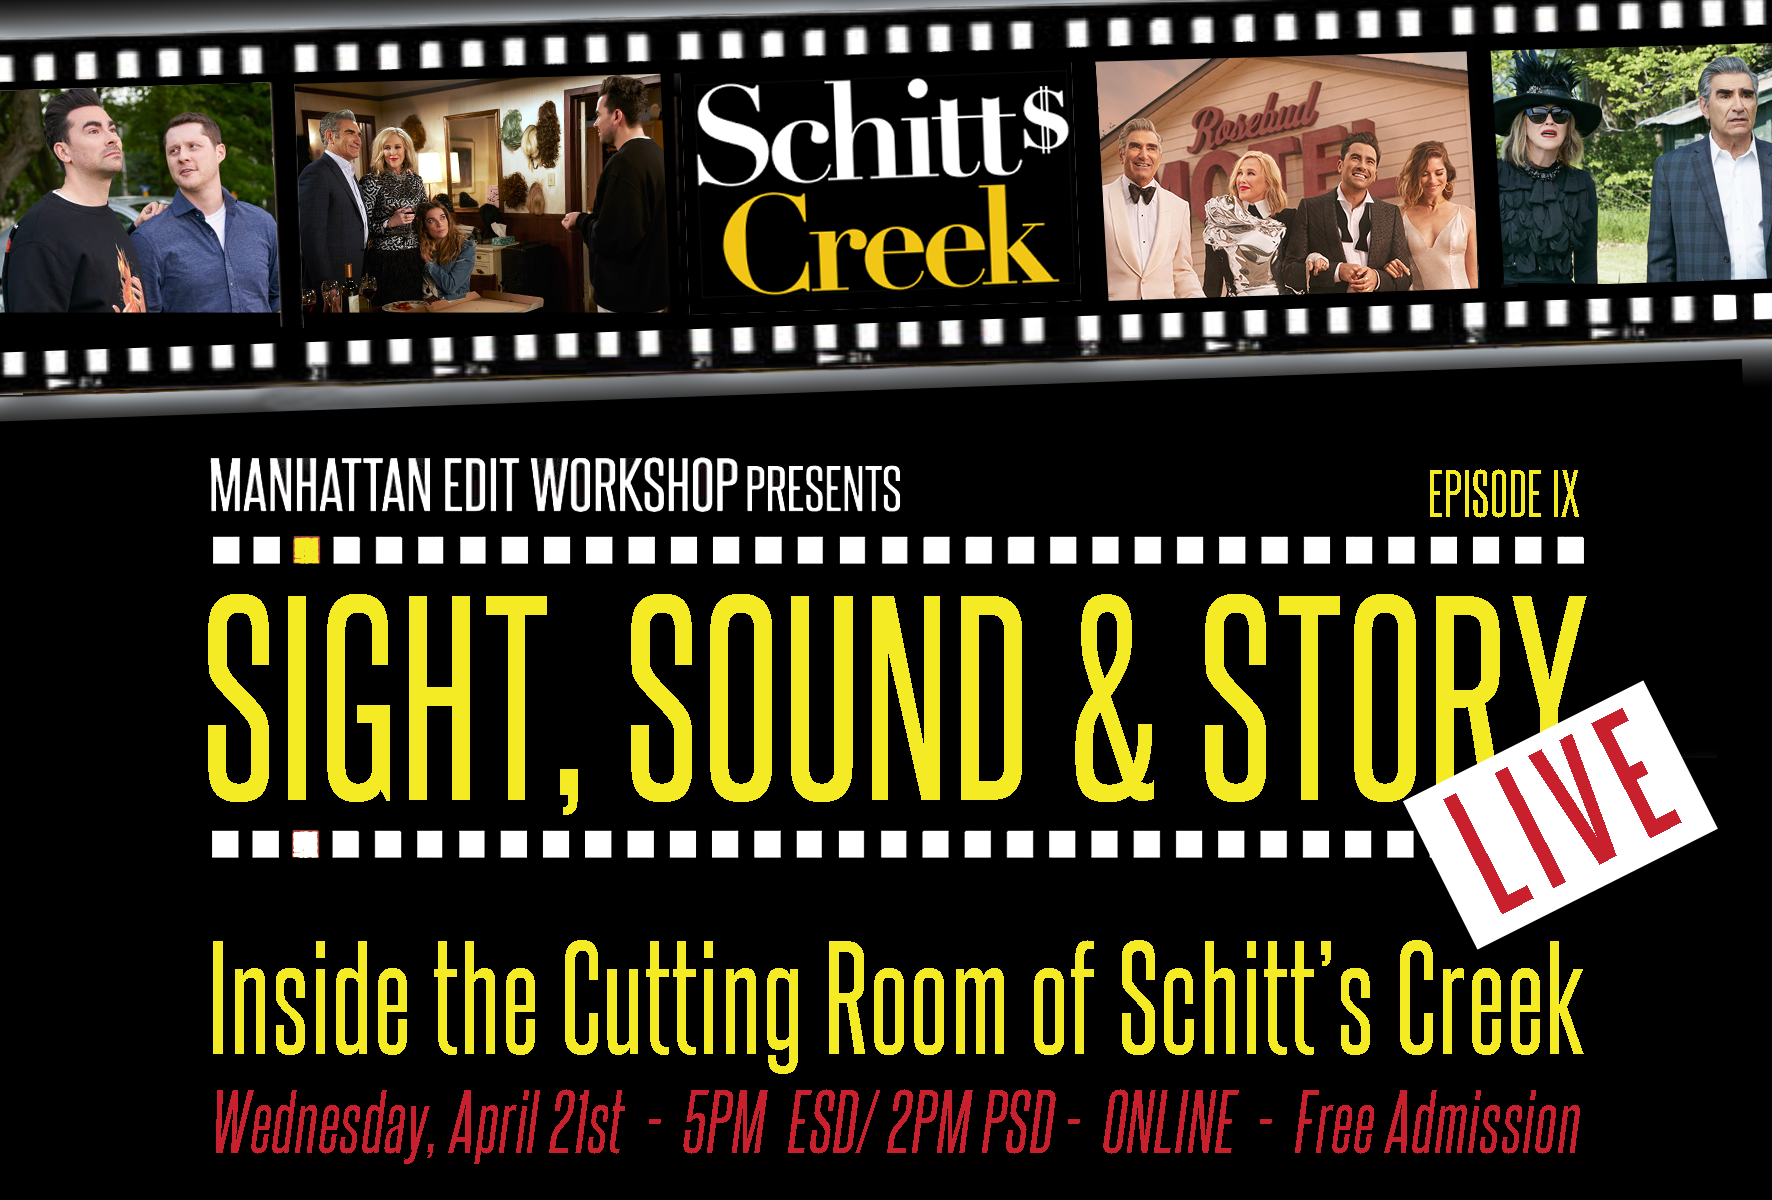 """Sight, Sound & Story: Live Online with """"Inside the Cutting Room of Schitt's Creek"""""""